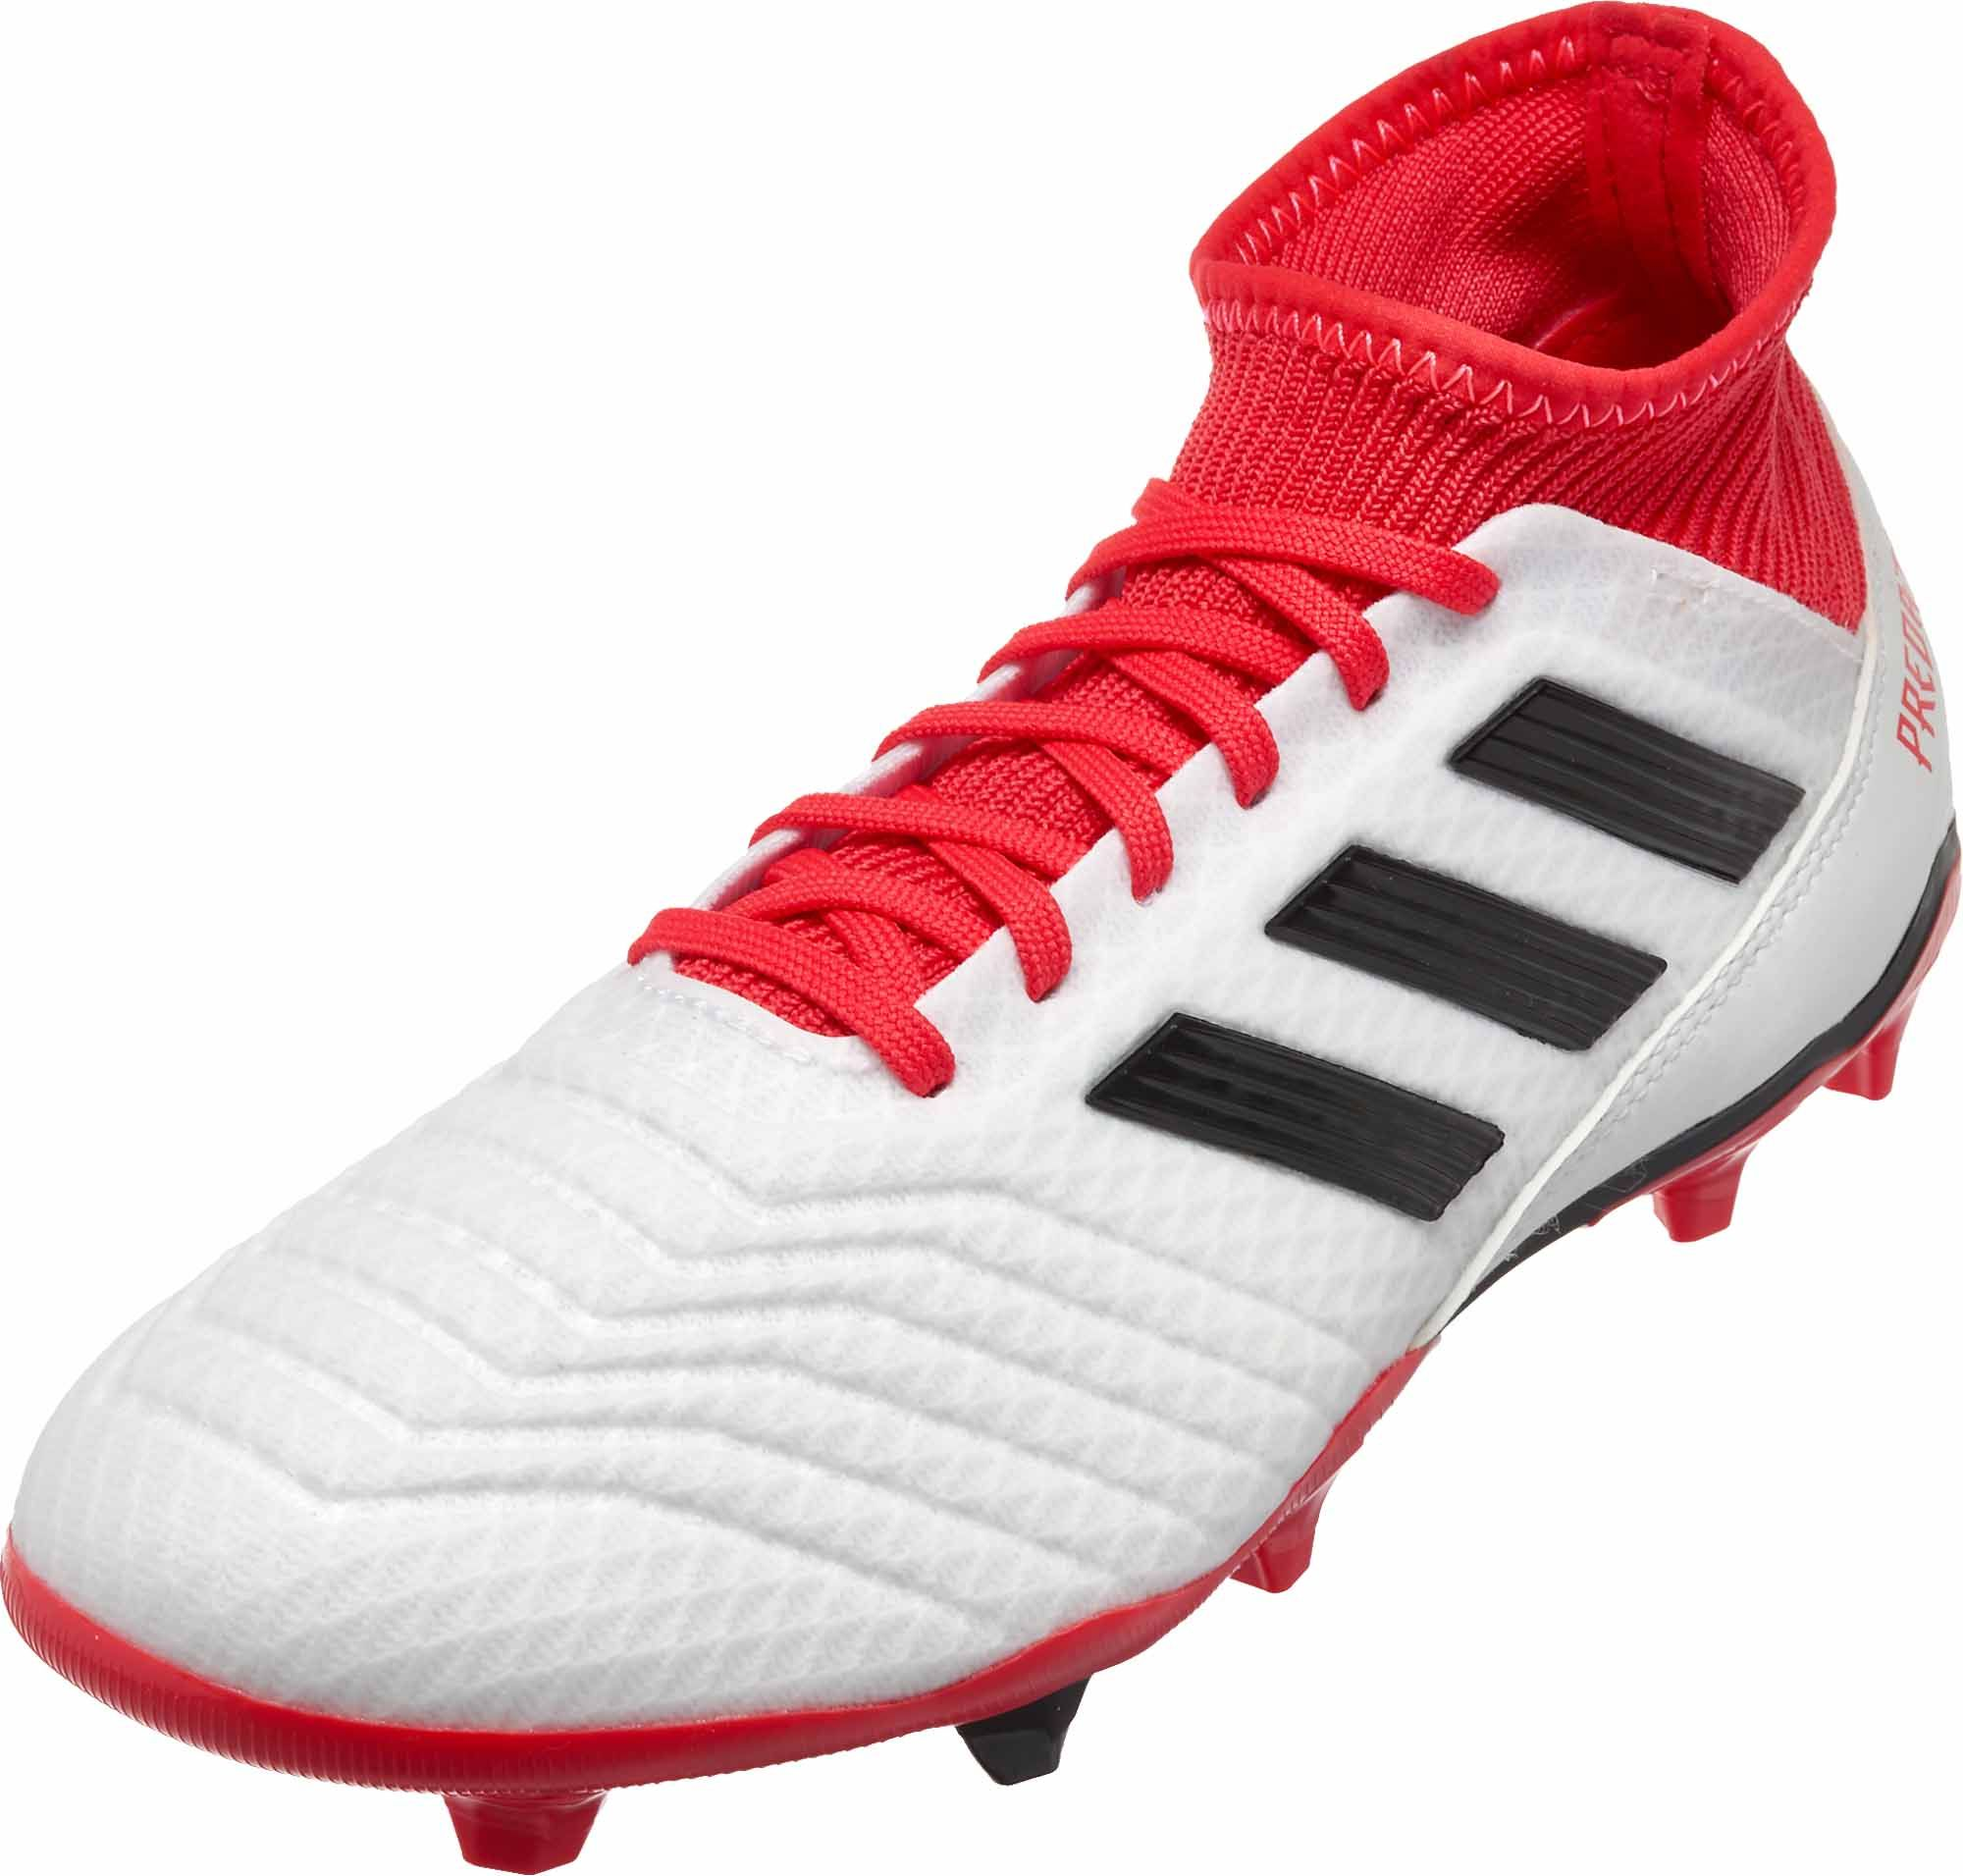 1cf963eeefb Get these adidas Predator 18.3 FG soccer cleats from SoccerPro.